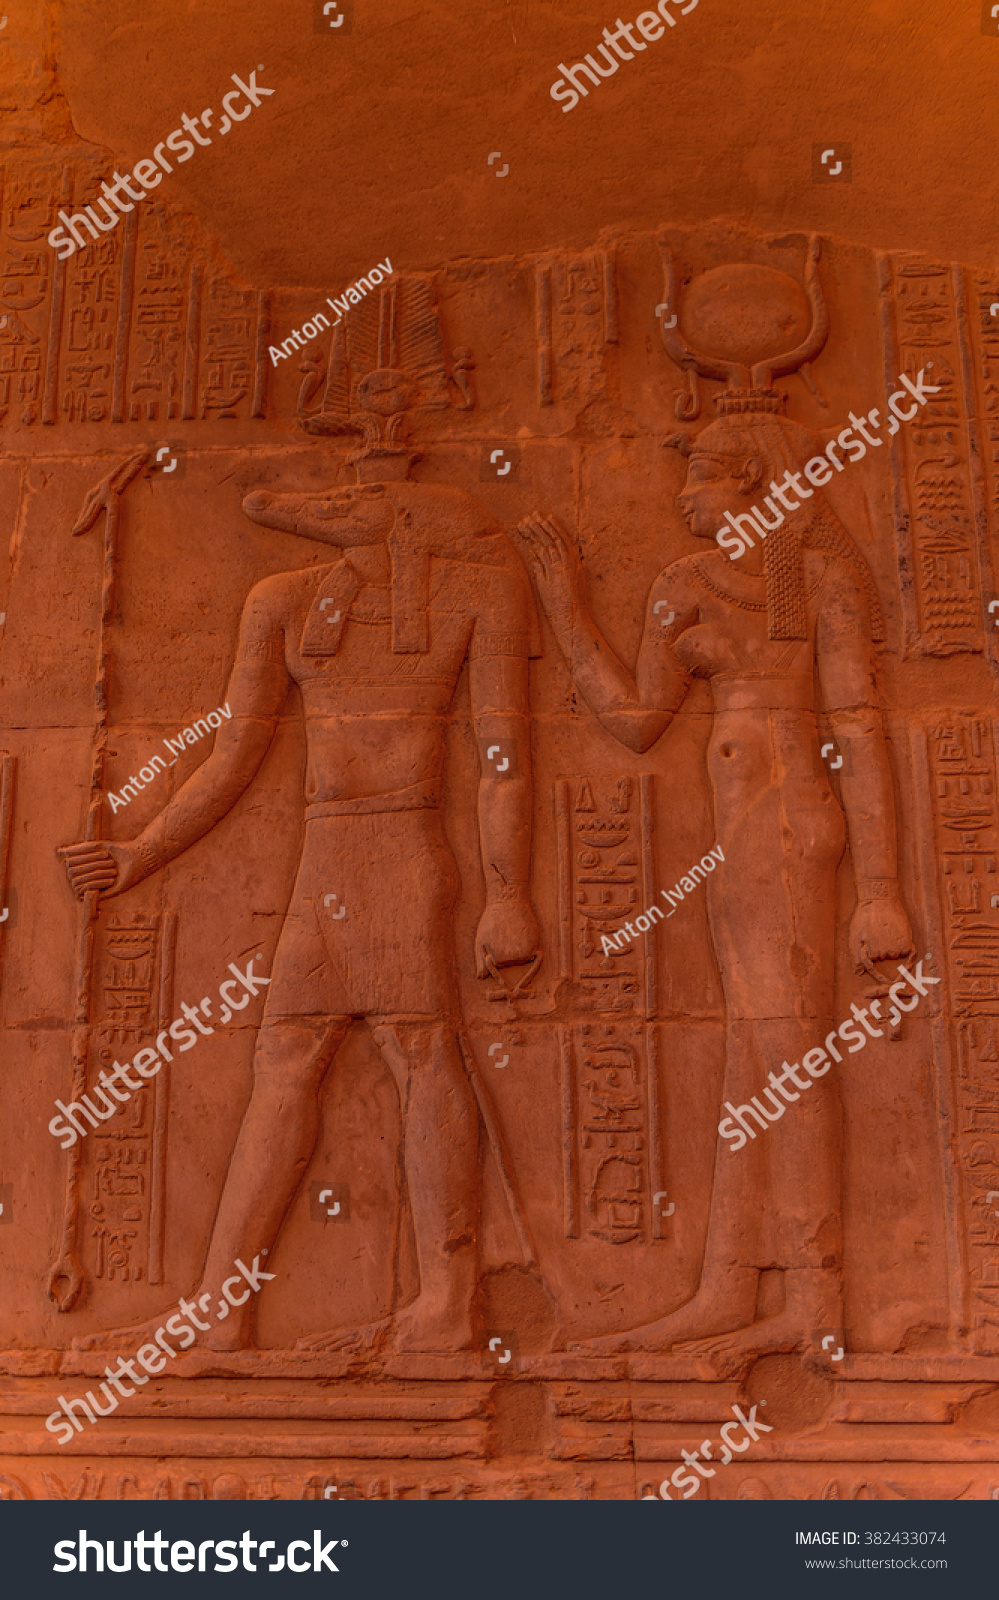 sobek ndash hieroglyphic inscriptions - photo #43